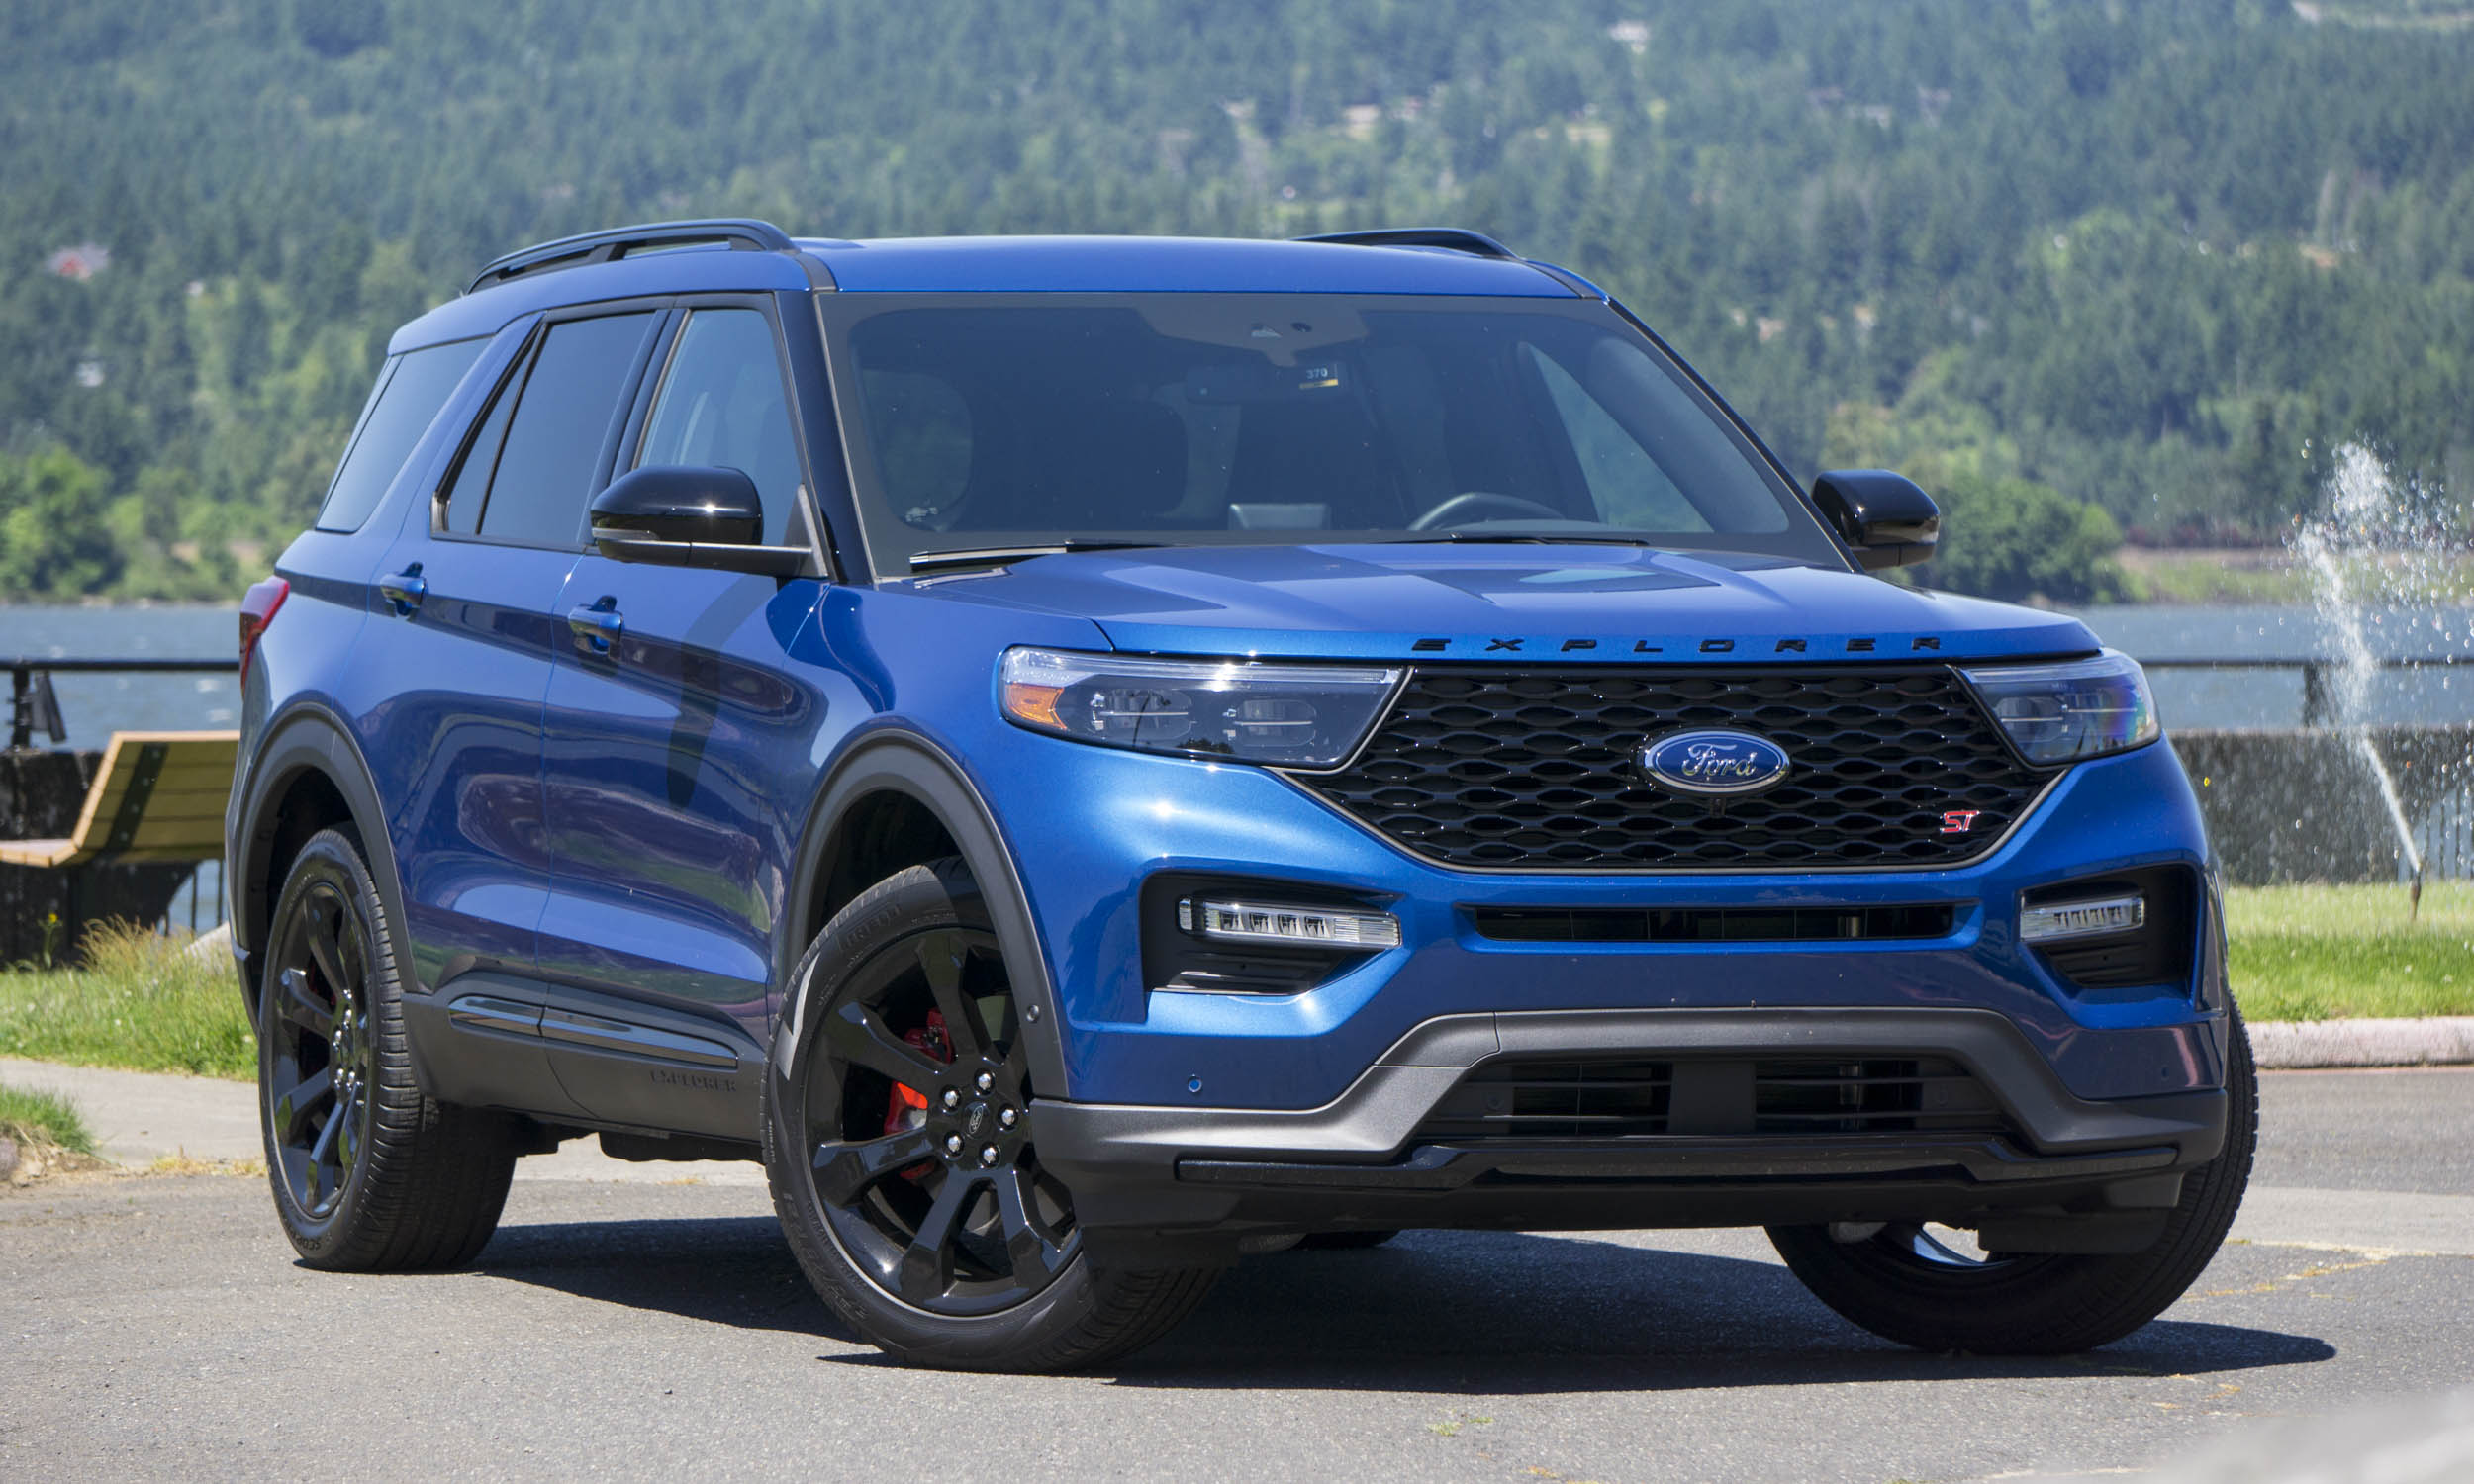 Ford Explorer 2020 Review.2020 Ford Explorer First Drive Review Autonxt